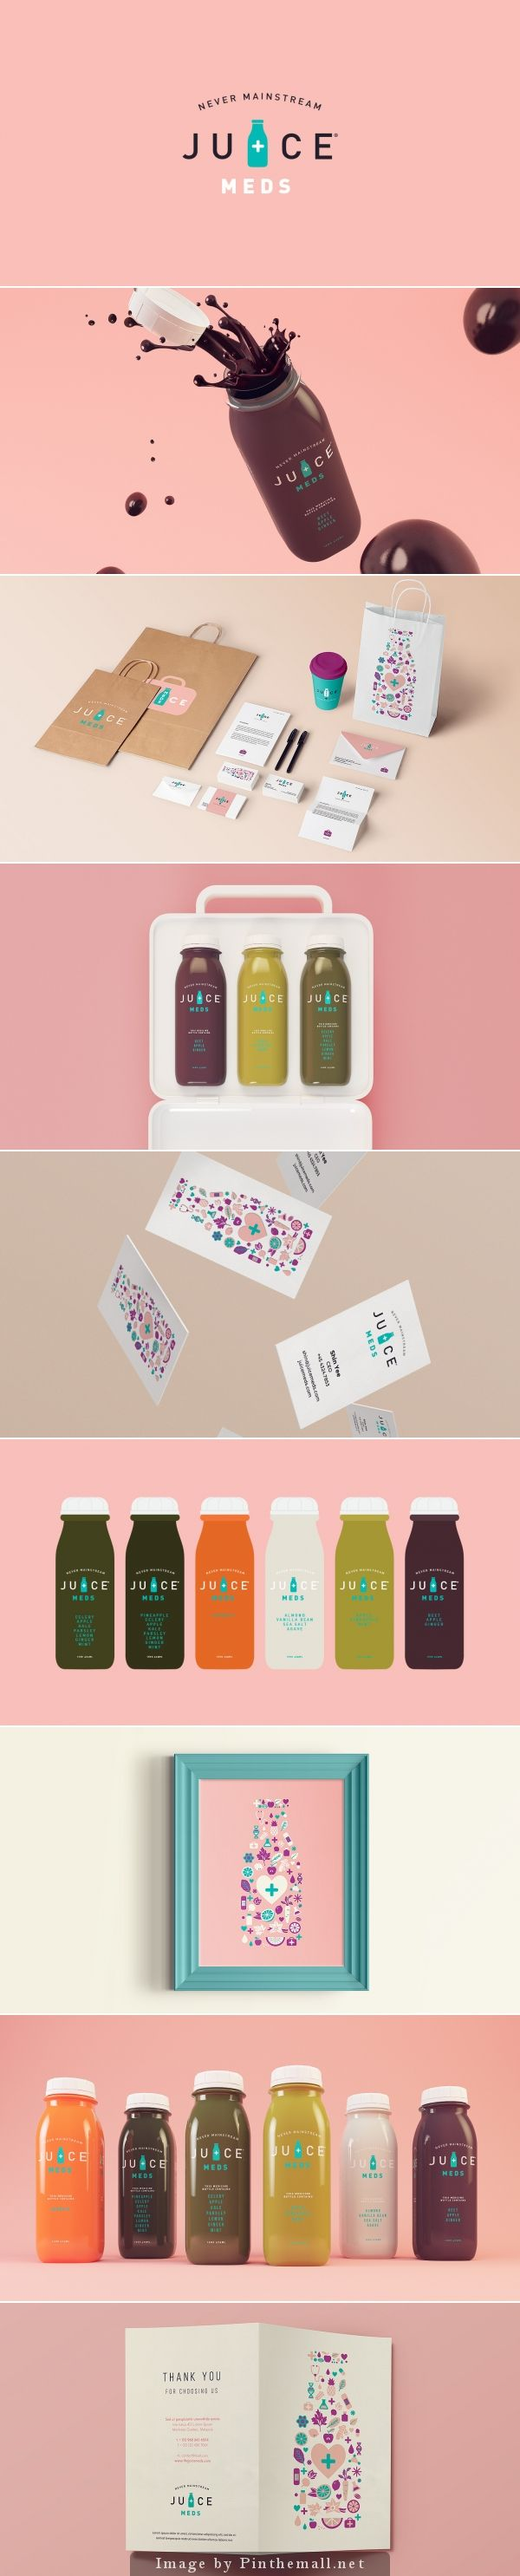 Juice Meds by Isabela Rodrigues #loseweight #howtoloseweight #loseweightfast #loseweightnow #juicing #juicerecipes #juicingforweightloss #exercisetoloseweight #ShawnT #exercise #insanity http://safediettoloseweight.com/juice